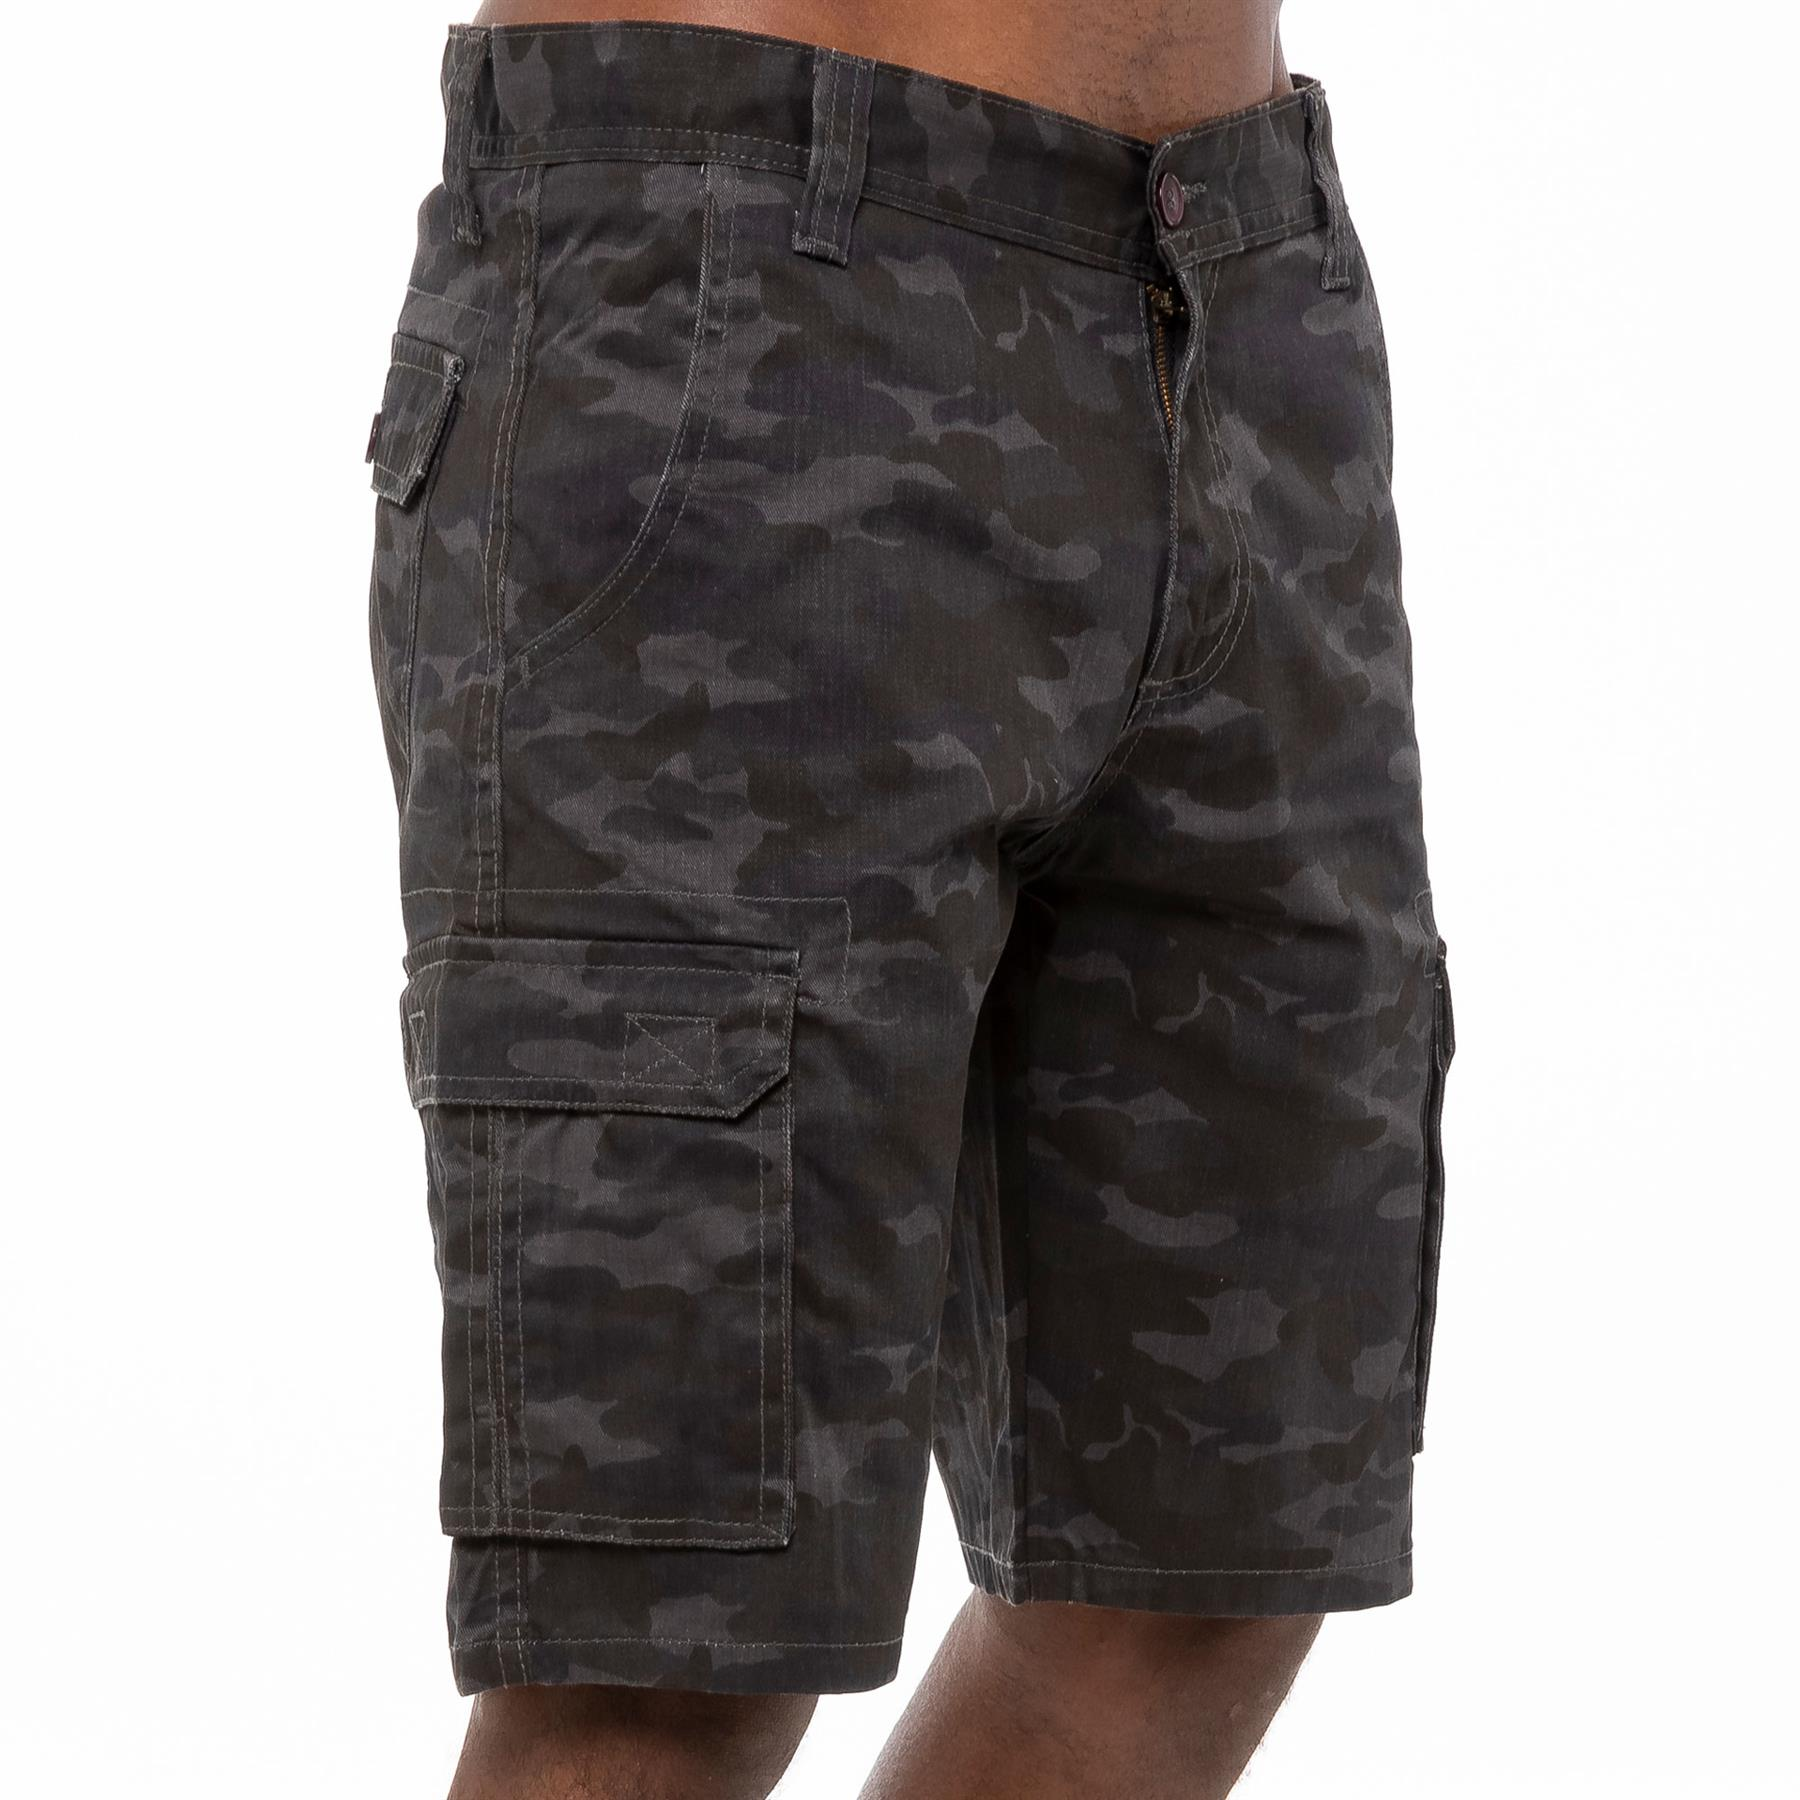 thumbnail 18 - Kruze Jeans Mens Army Combat Shorts Camouflage Cargo Casual Camo Work Half Pants